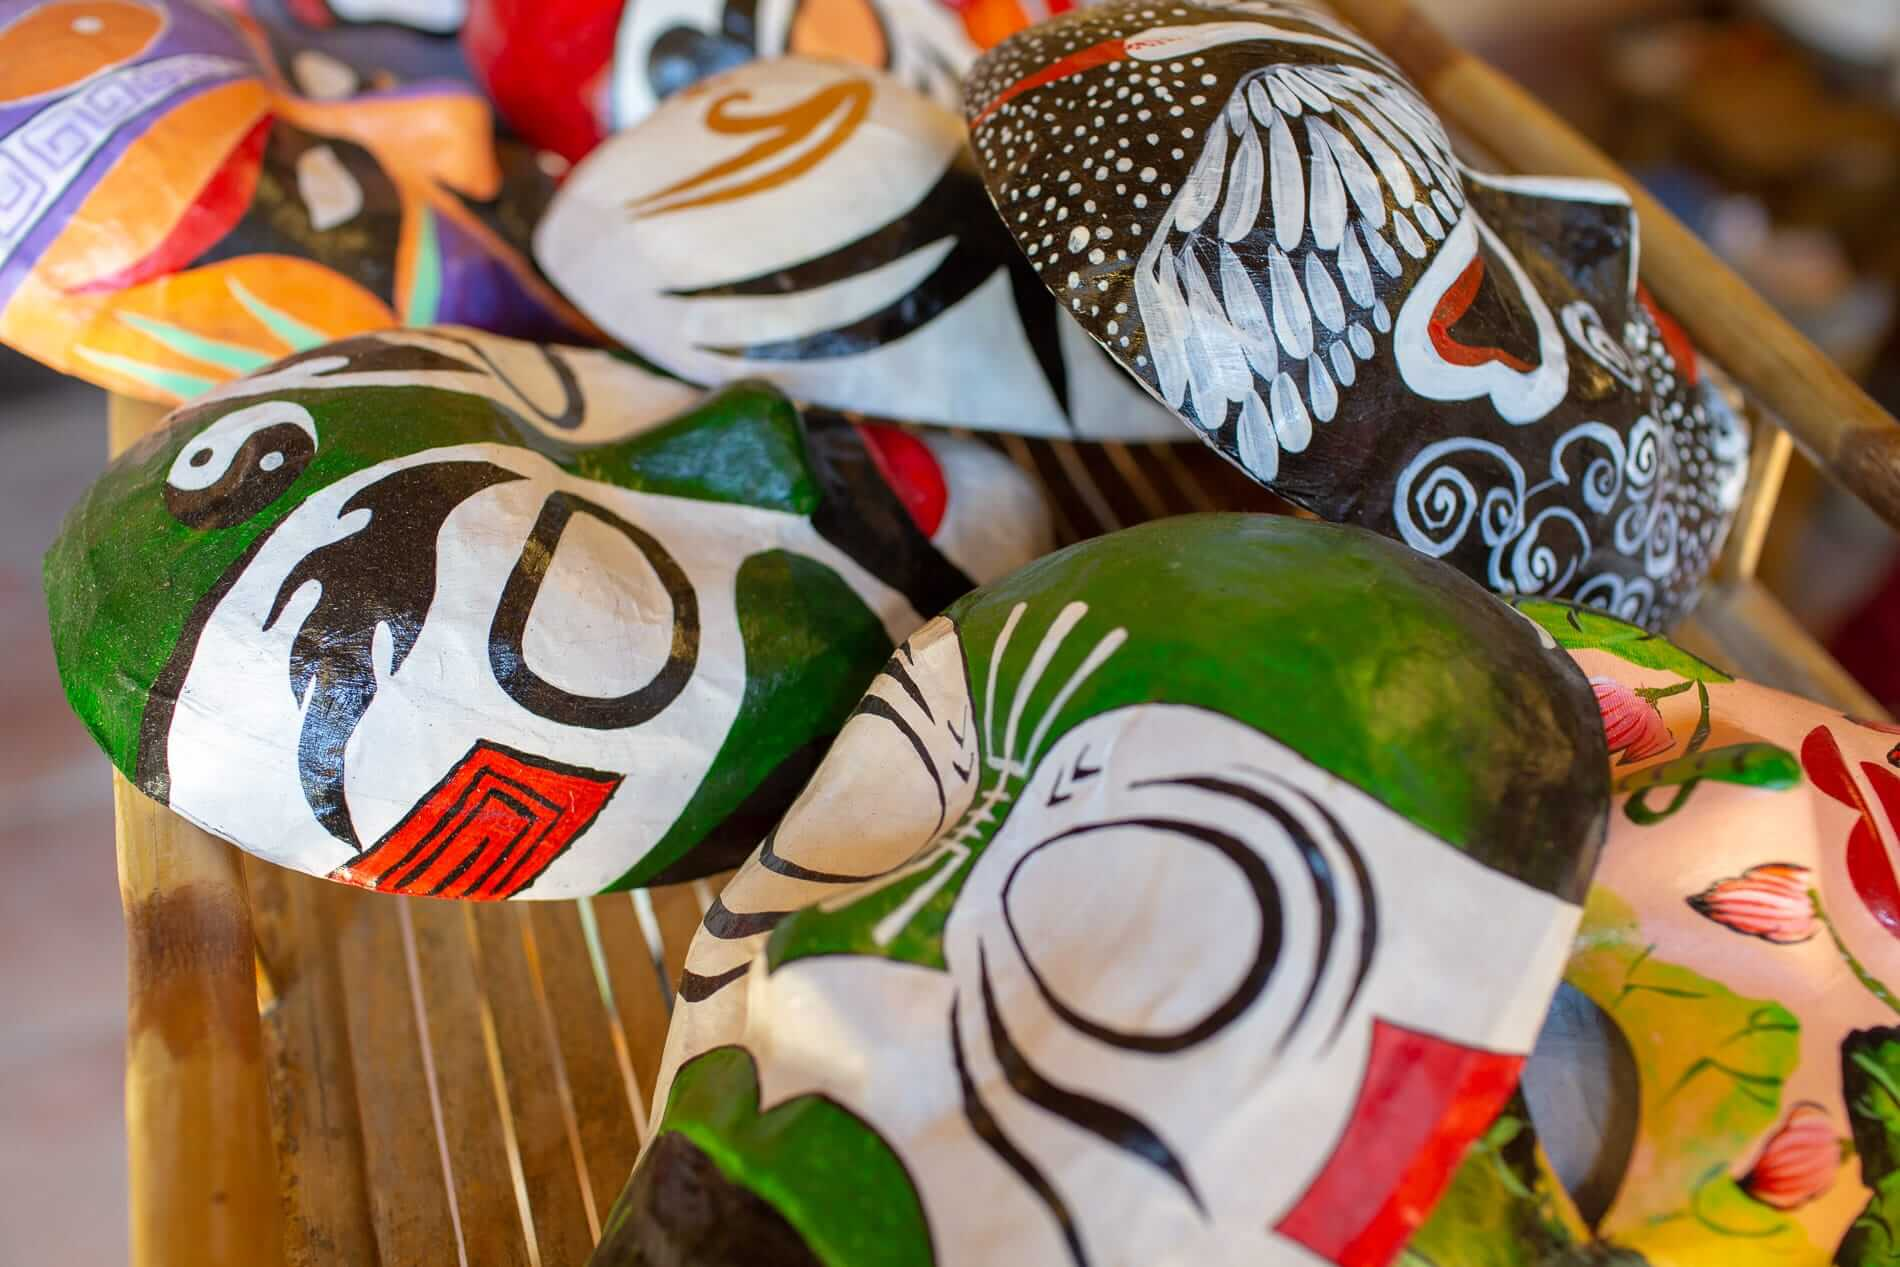 Painted masks - Hoi An Ancient Town